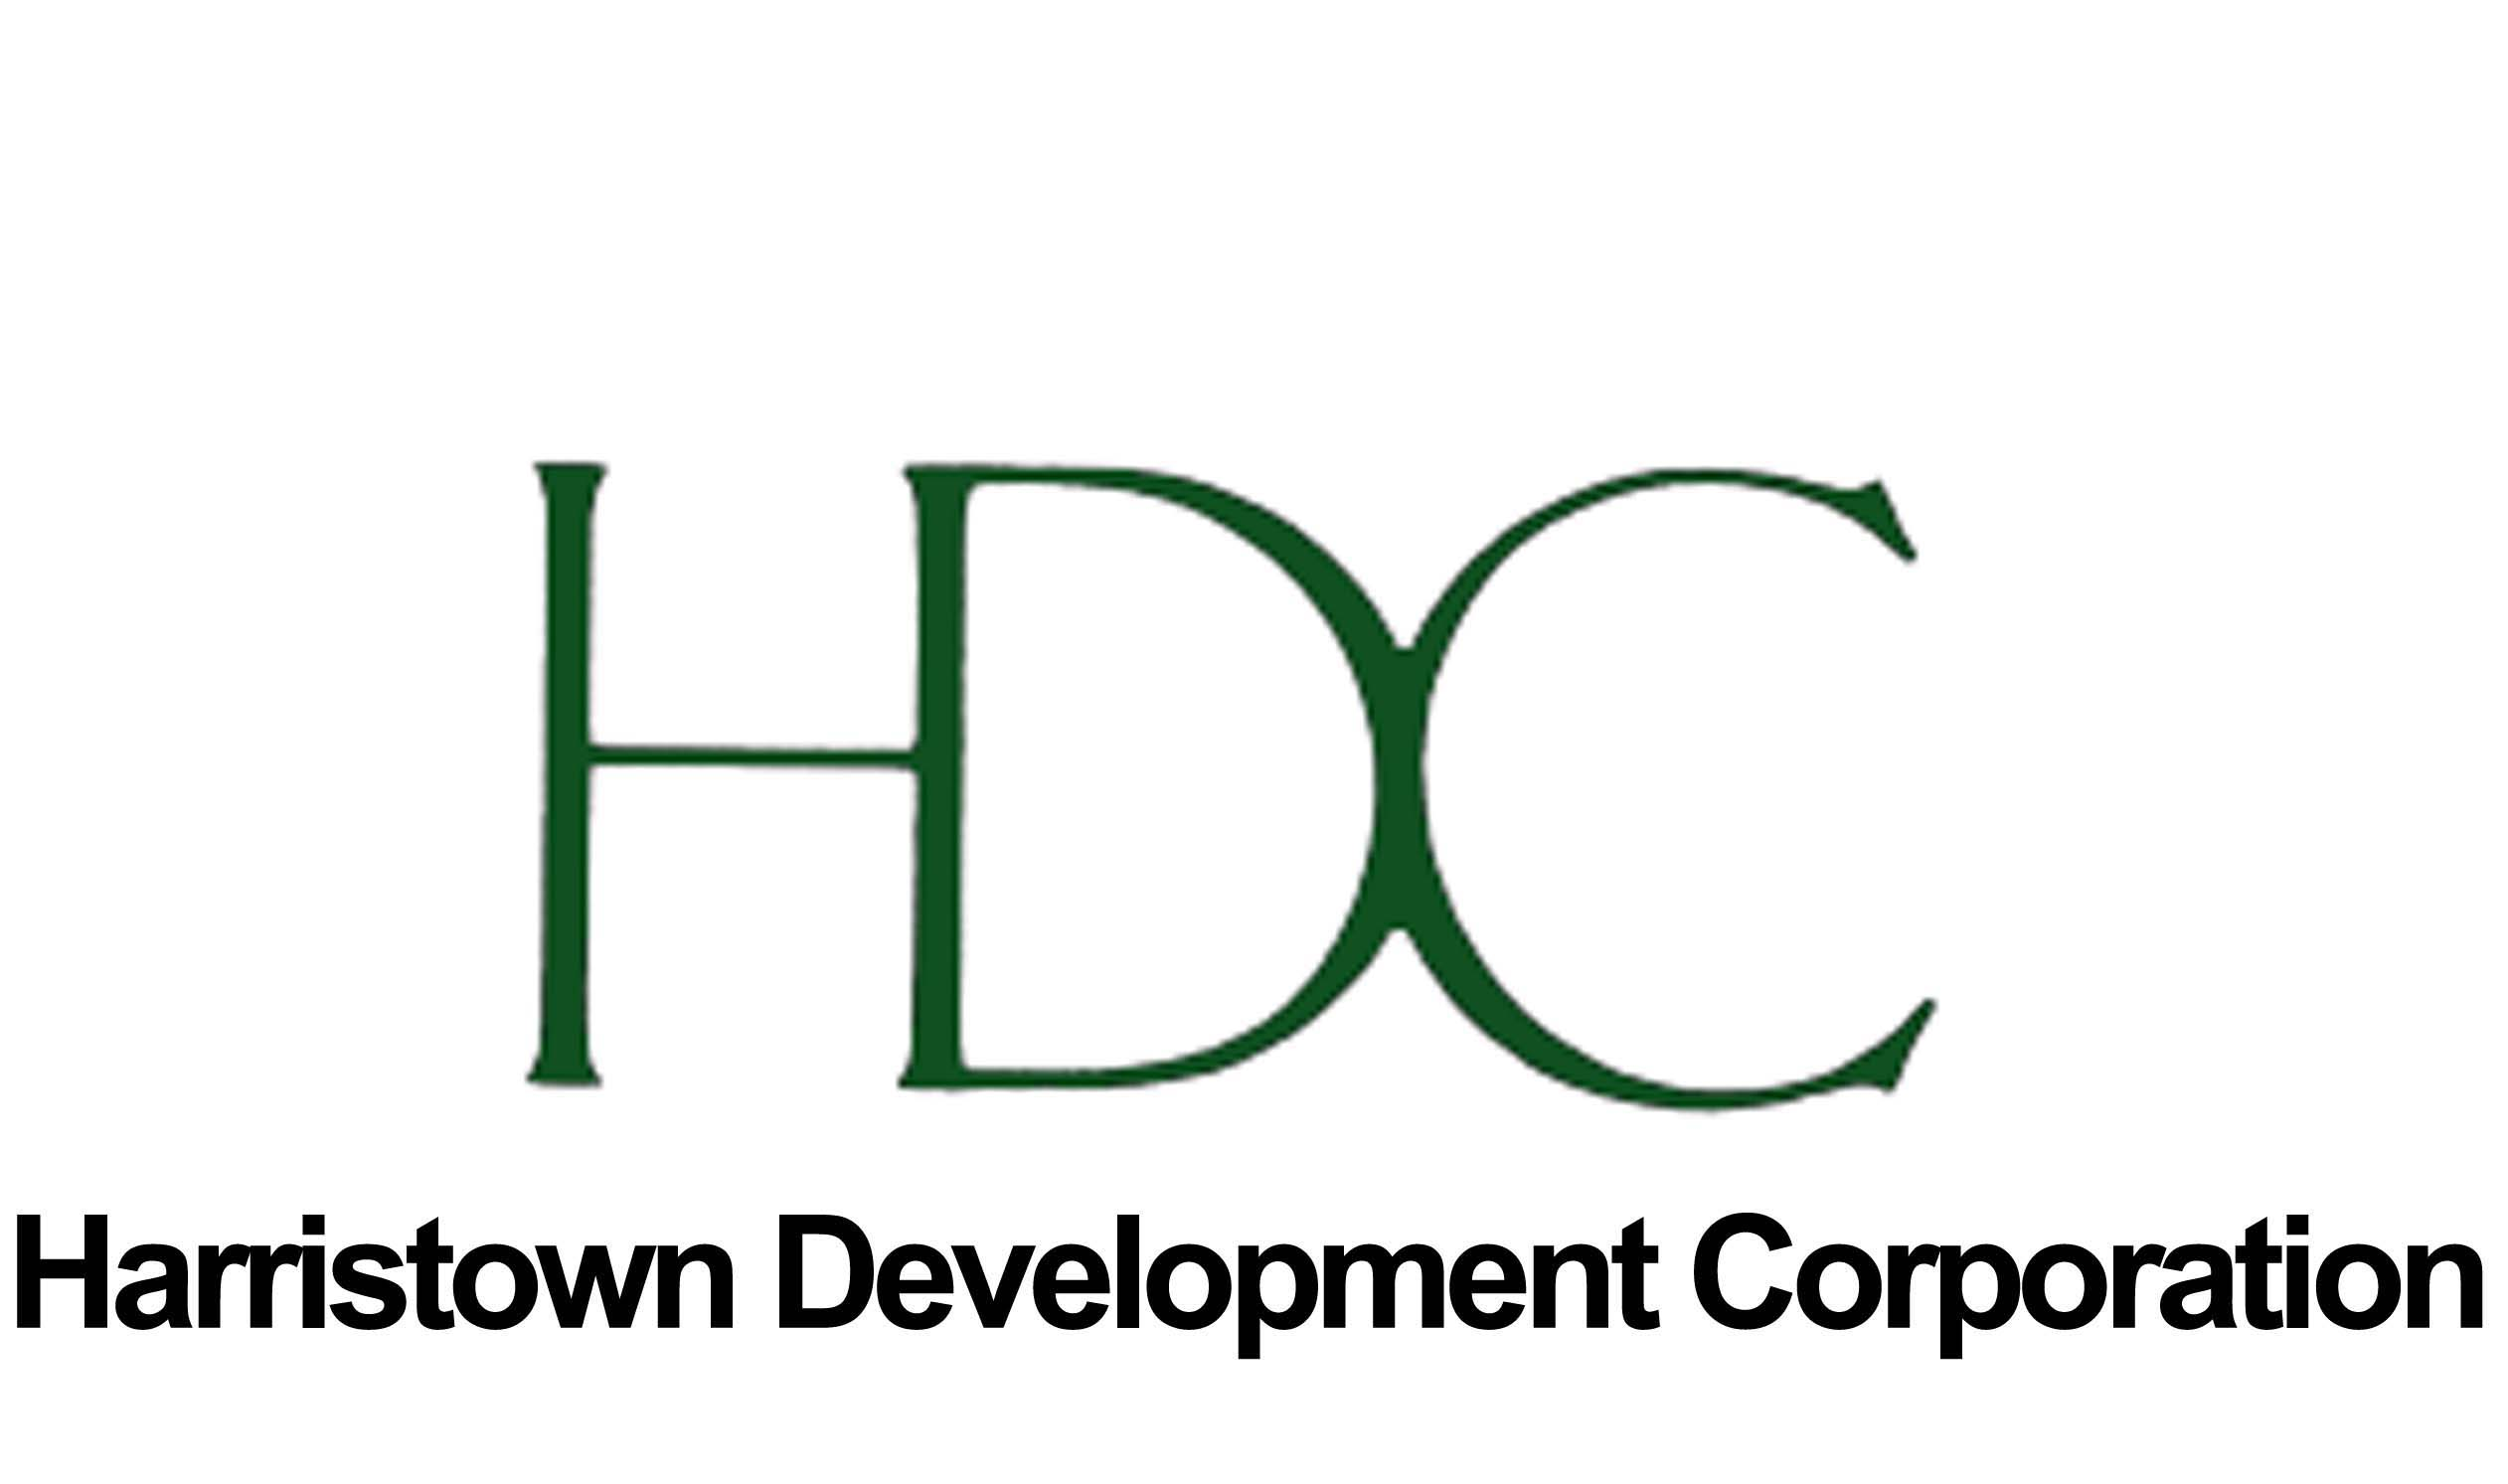 Harristown Development Corporation